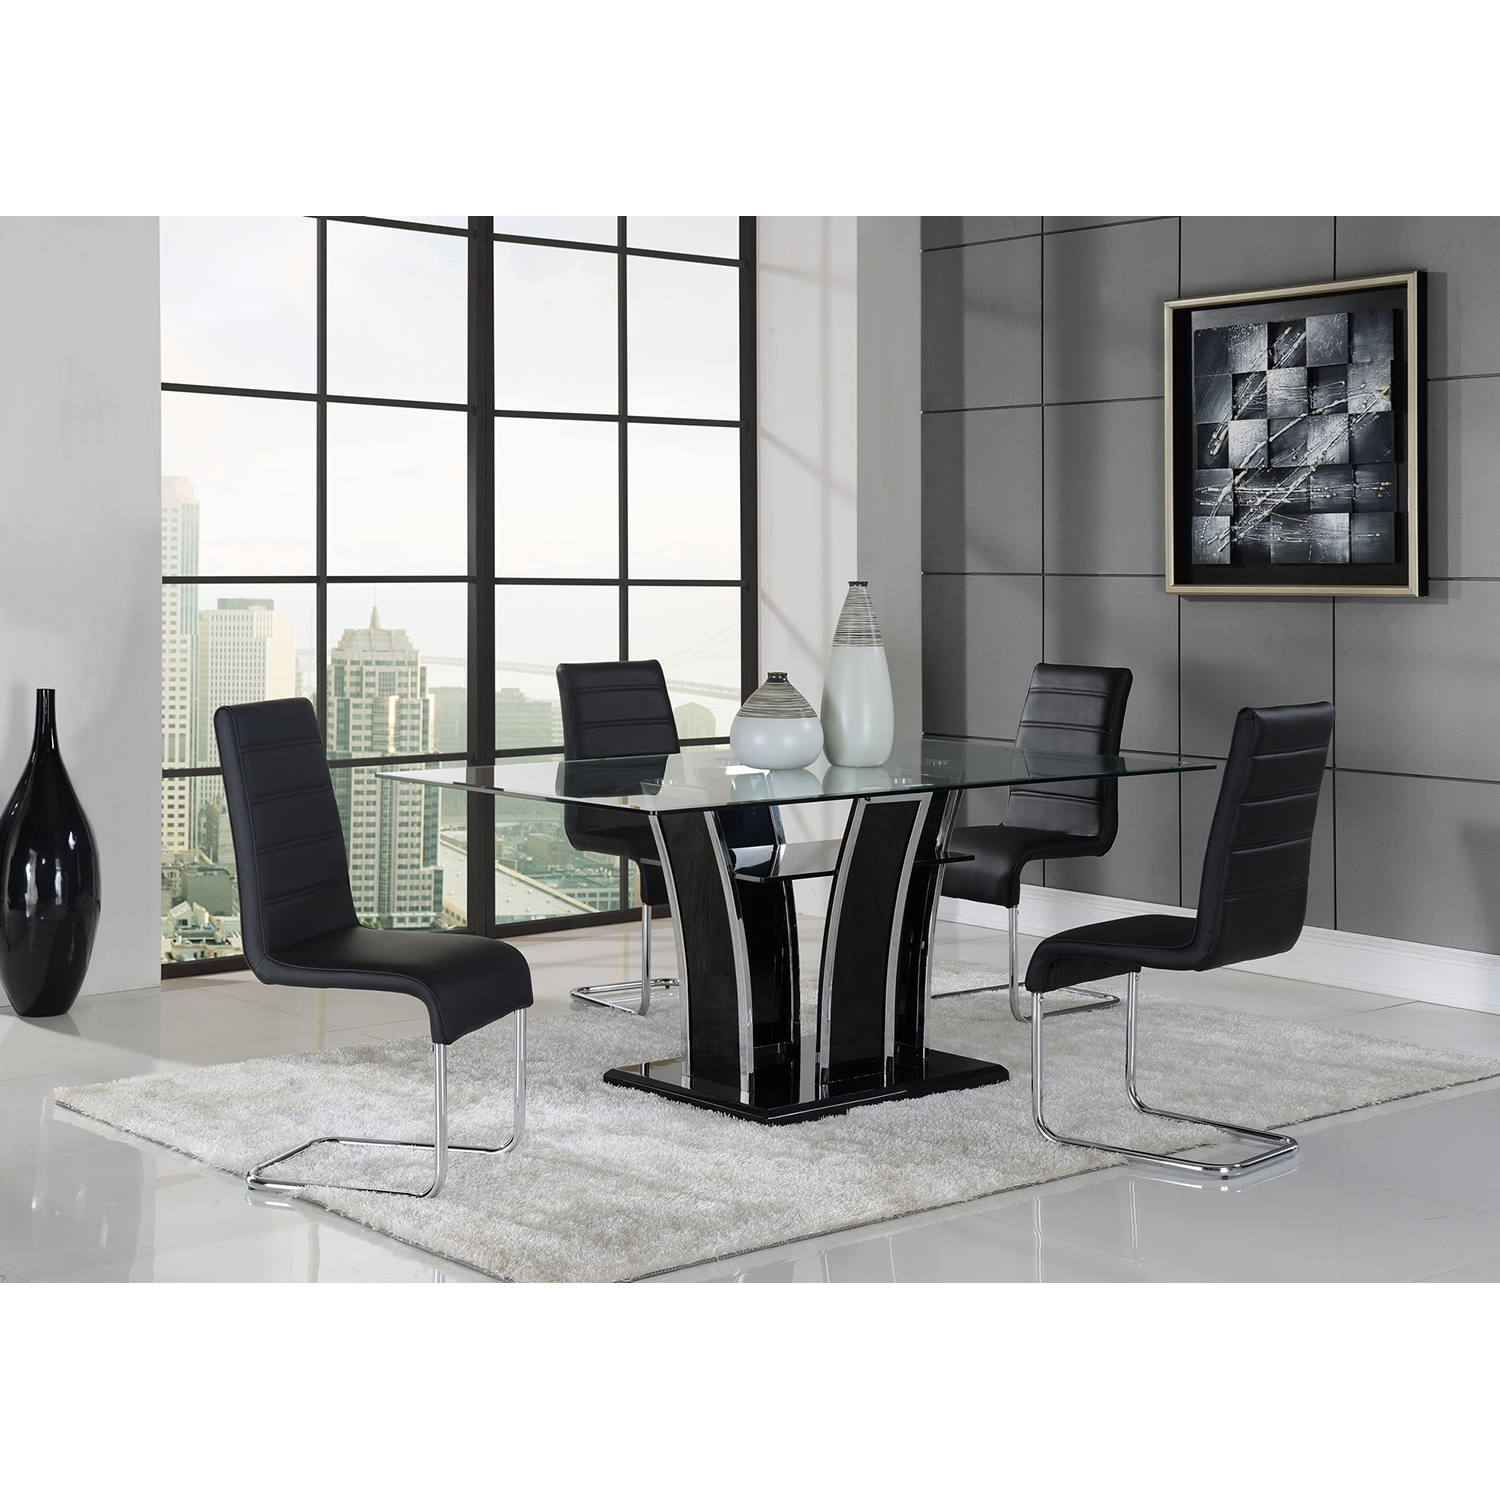 Caitlin 5-Piece Dining Set - Black